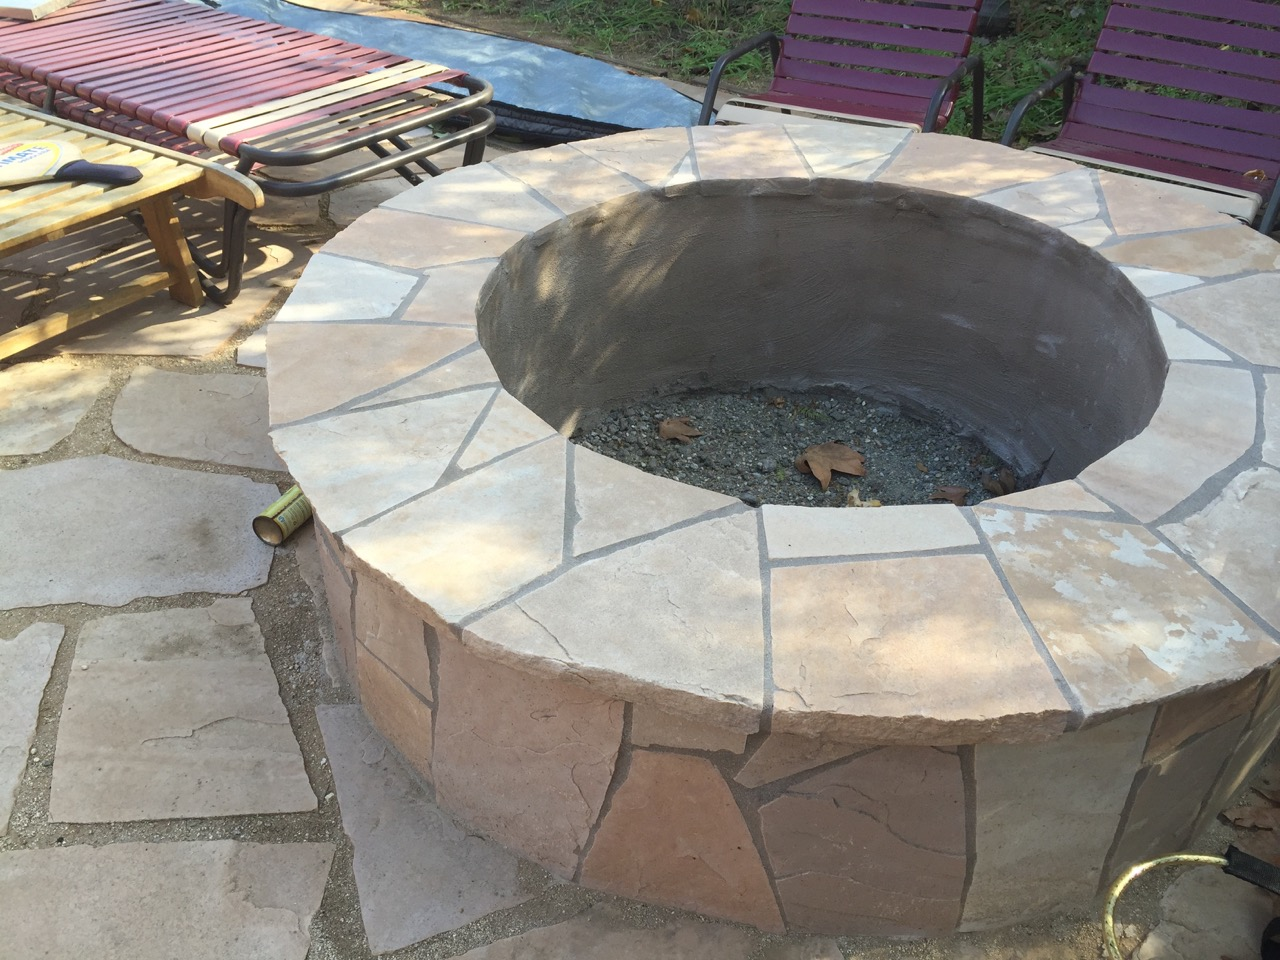 fire pit design for client within los angeles and orange county area